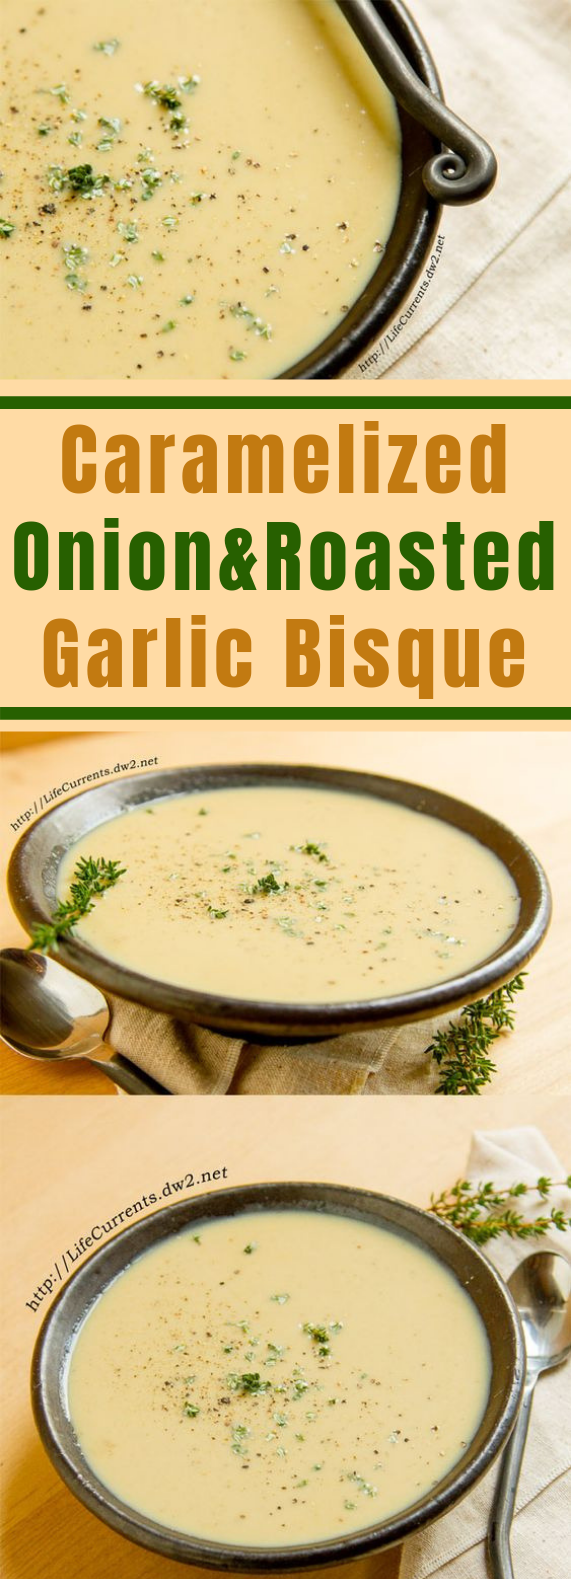 Caramelized Onion Roasted Garlic Bisque #vegetarian #veggies